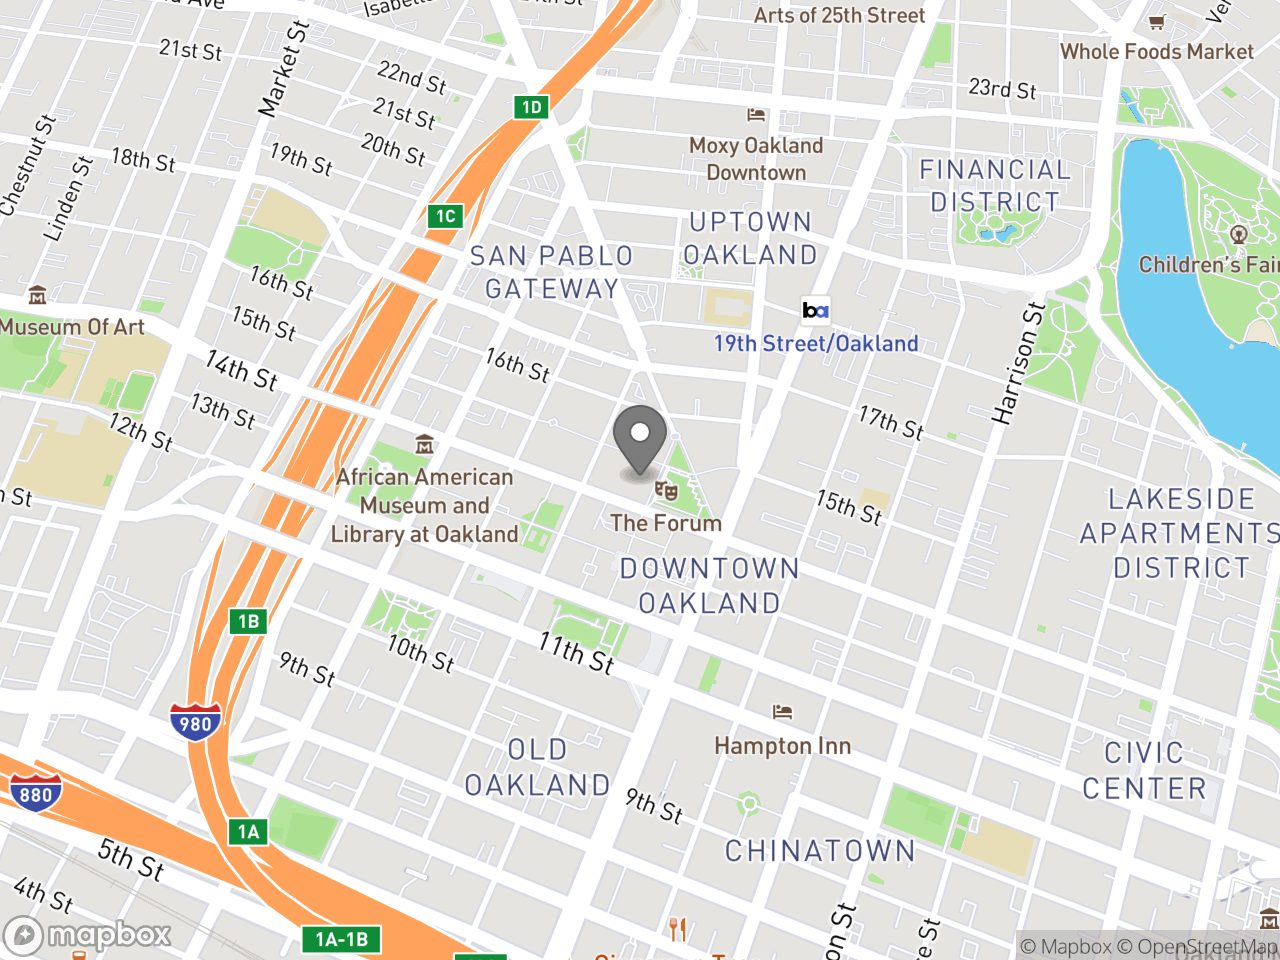 Map location for Oakland Workforce Development Board (OWDB) - Regular Meeting August 6, 2020, located at 1 Frank H. Ogawa Plaza in Oakland , CA 94612